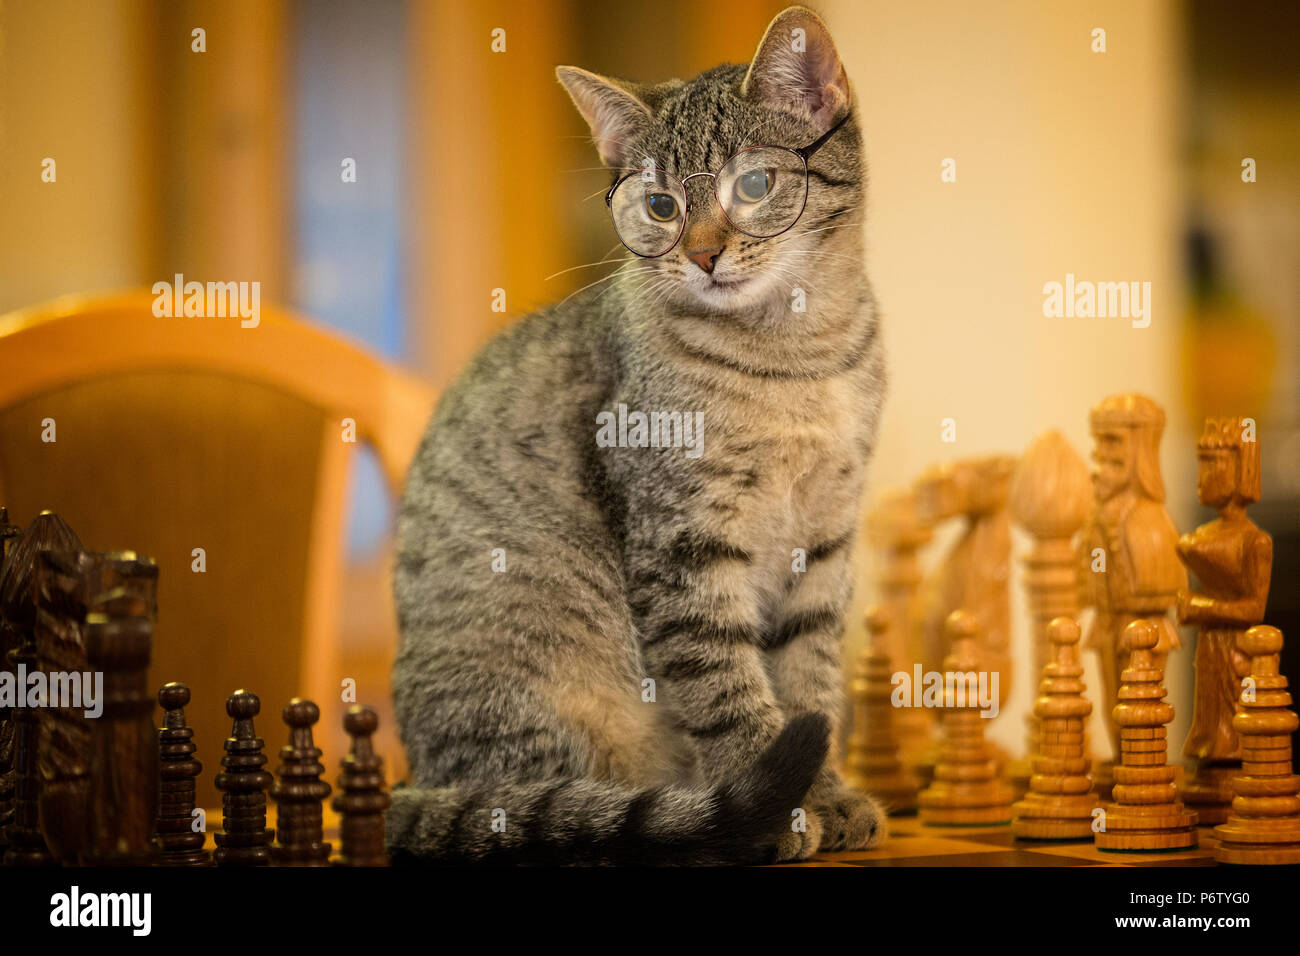 2a14fd47ebd Little cat wearing glasses sitting on chess board. Looking at chess pieces.  - Stock